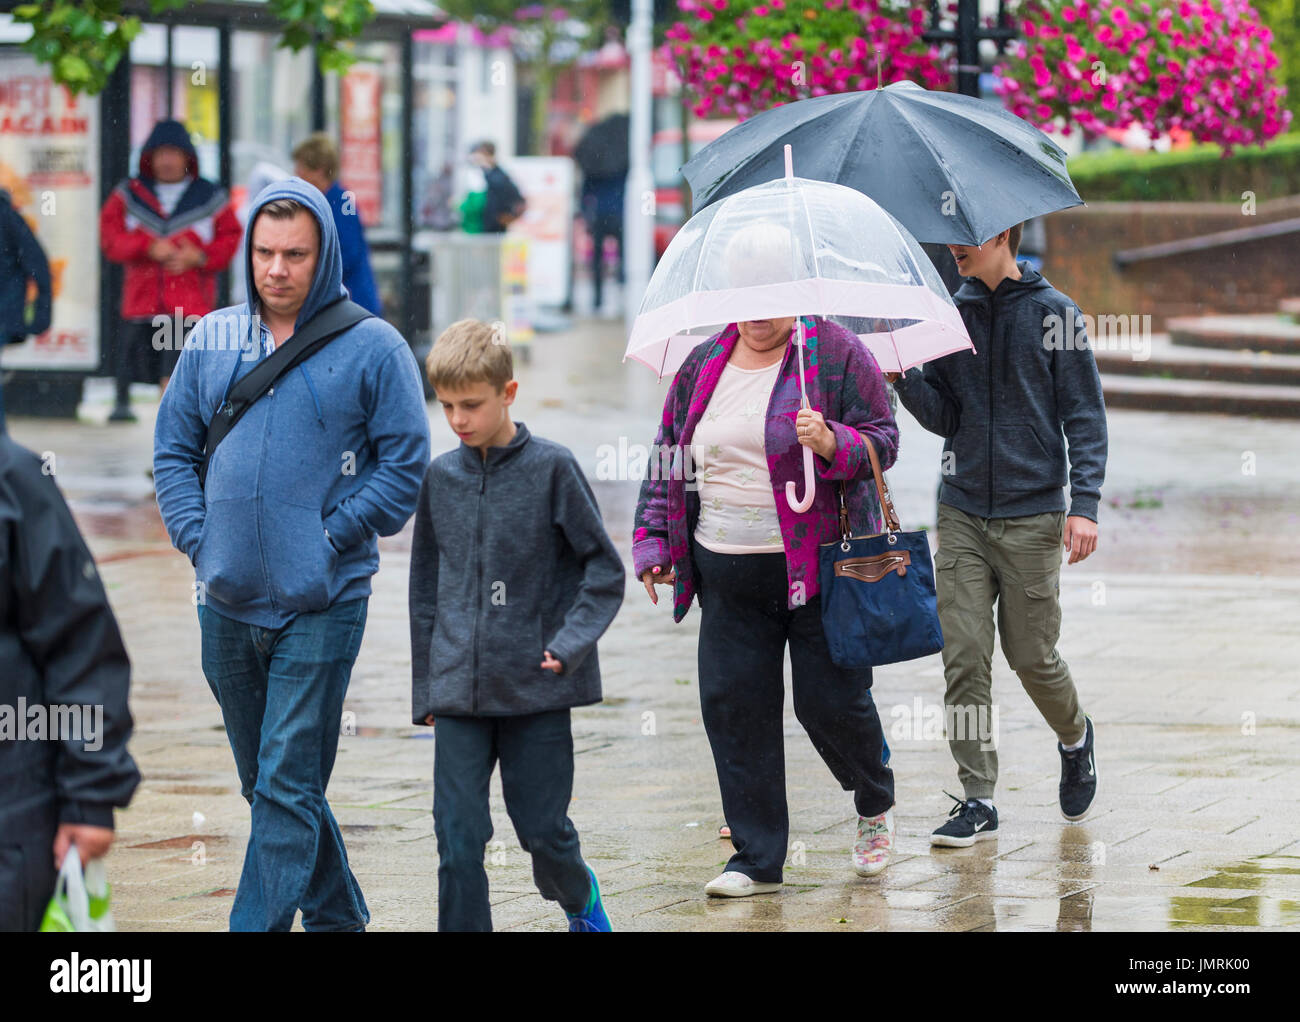 Family walking in the rain holding umbrellas in a shopping centre. - Stock Image